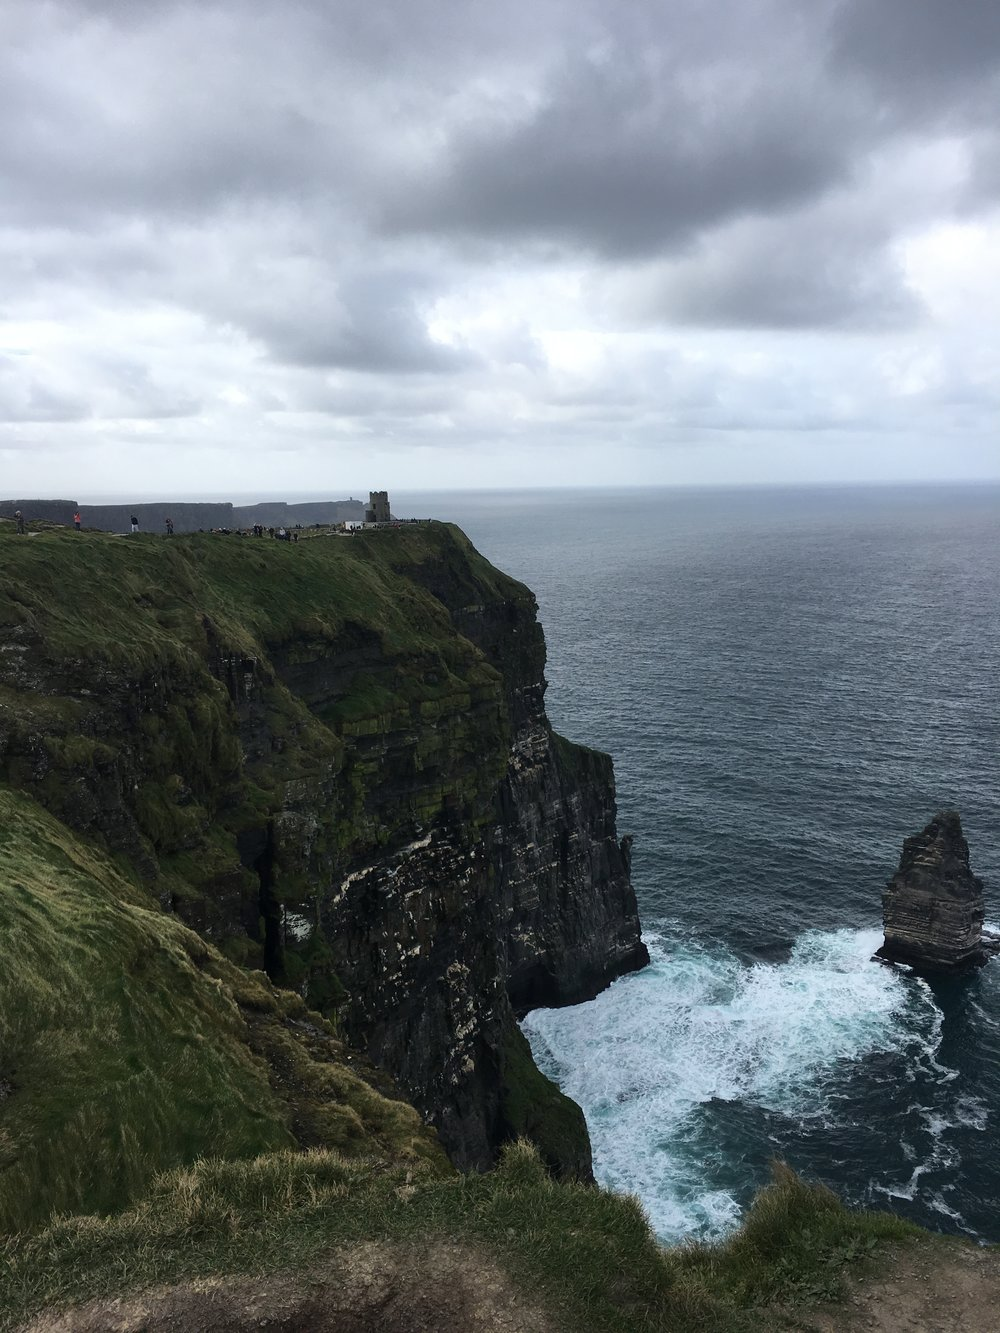 Standing on The Cliffs of Moher in Ireland